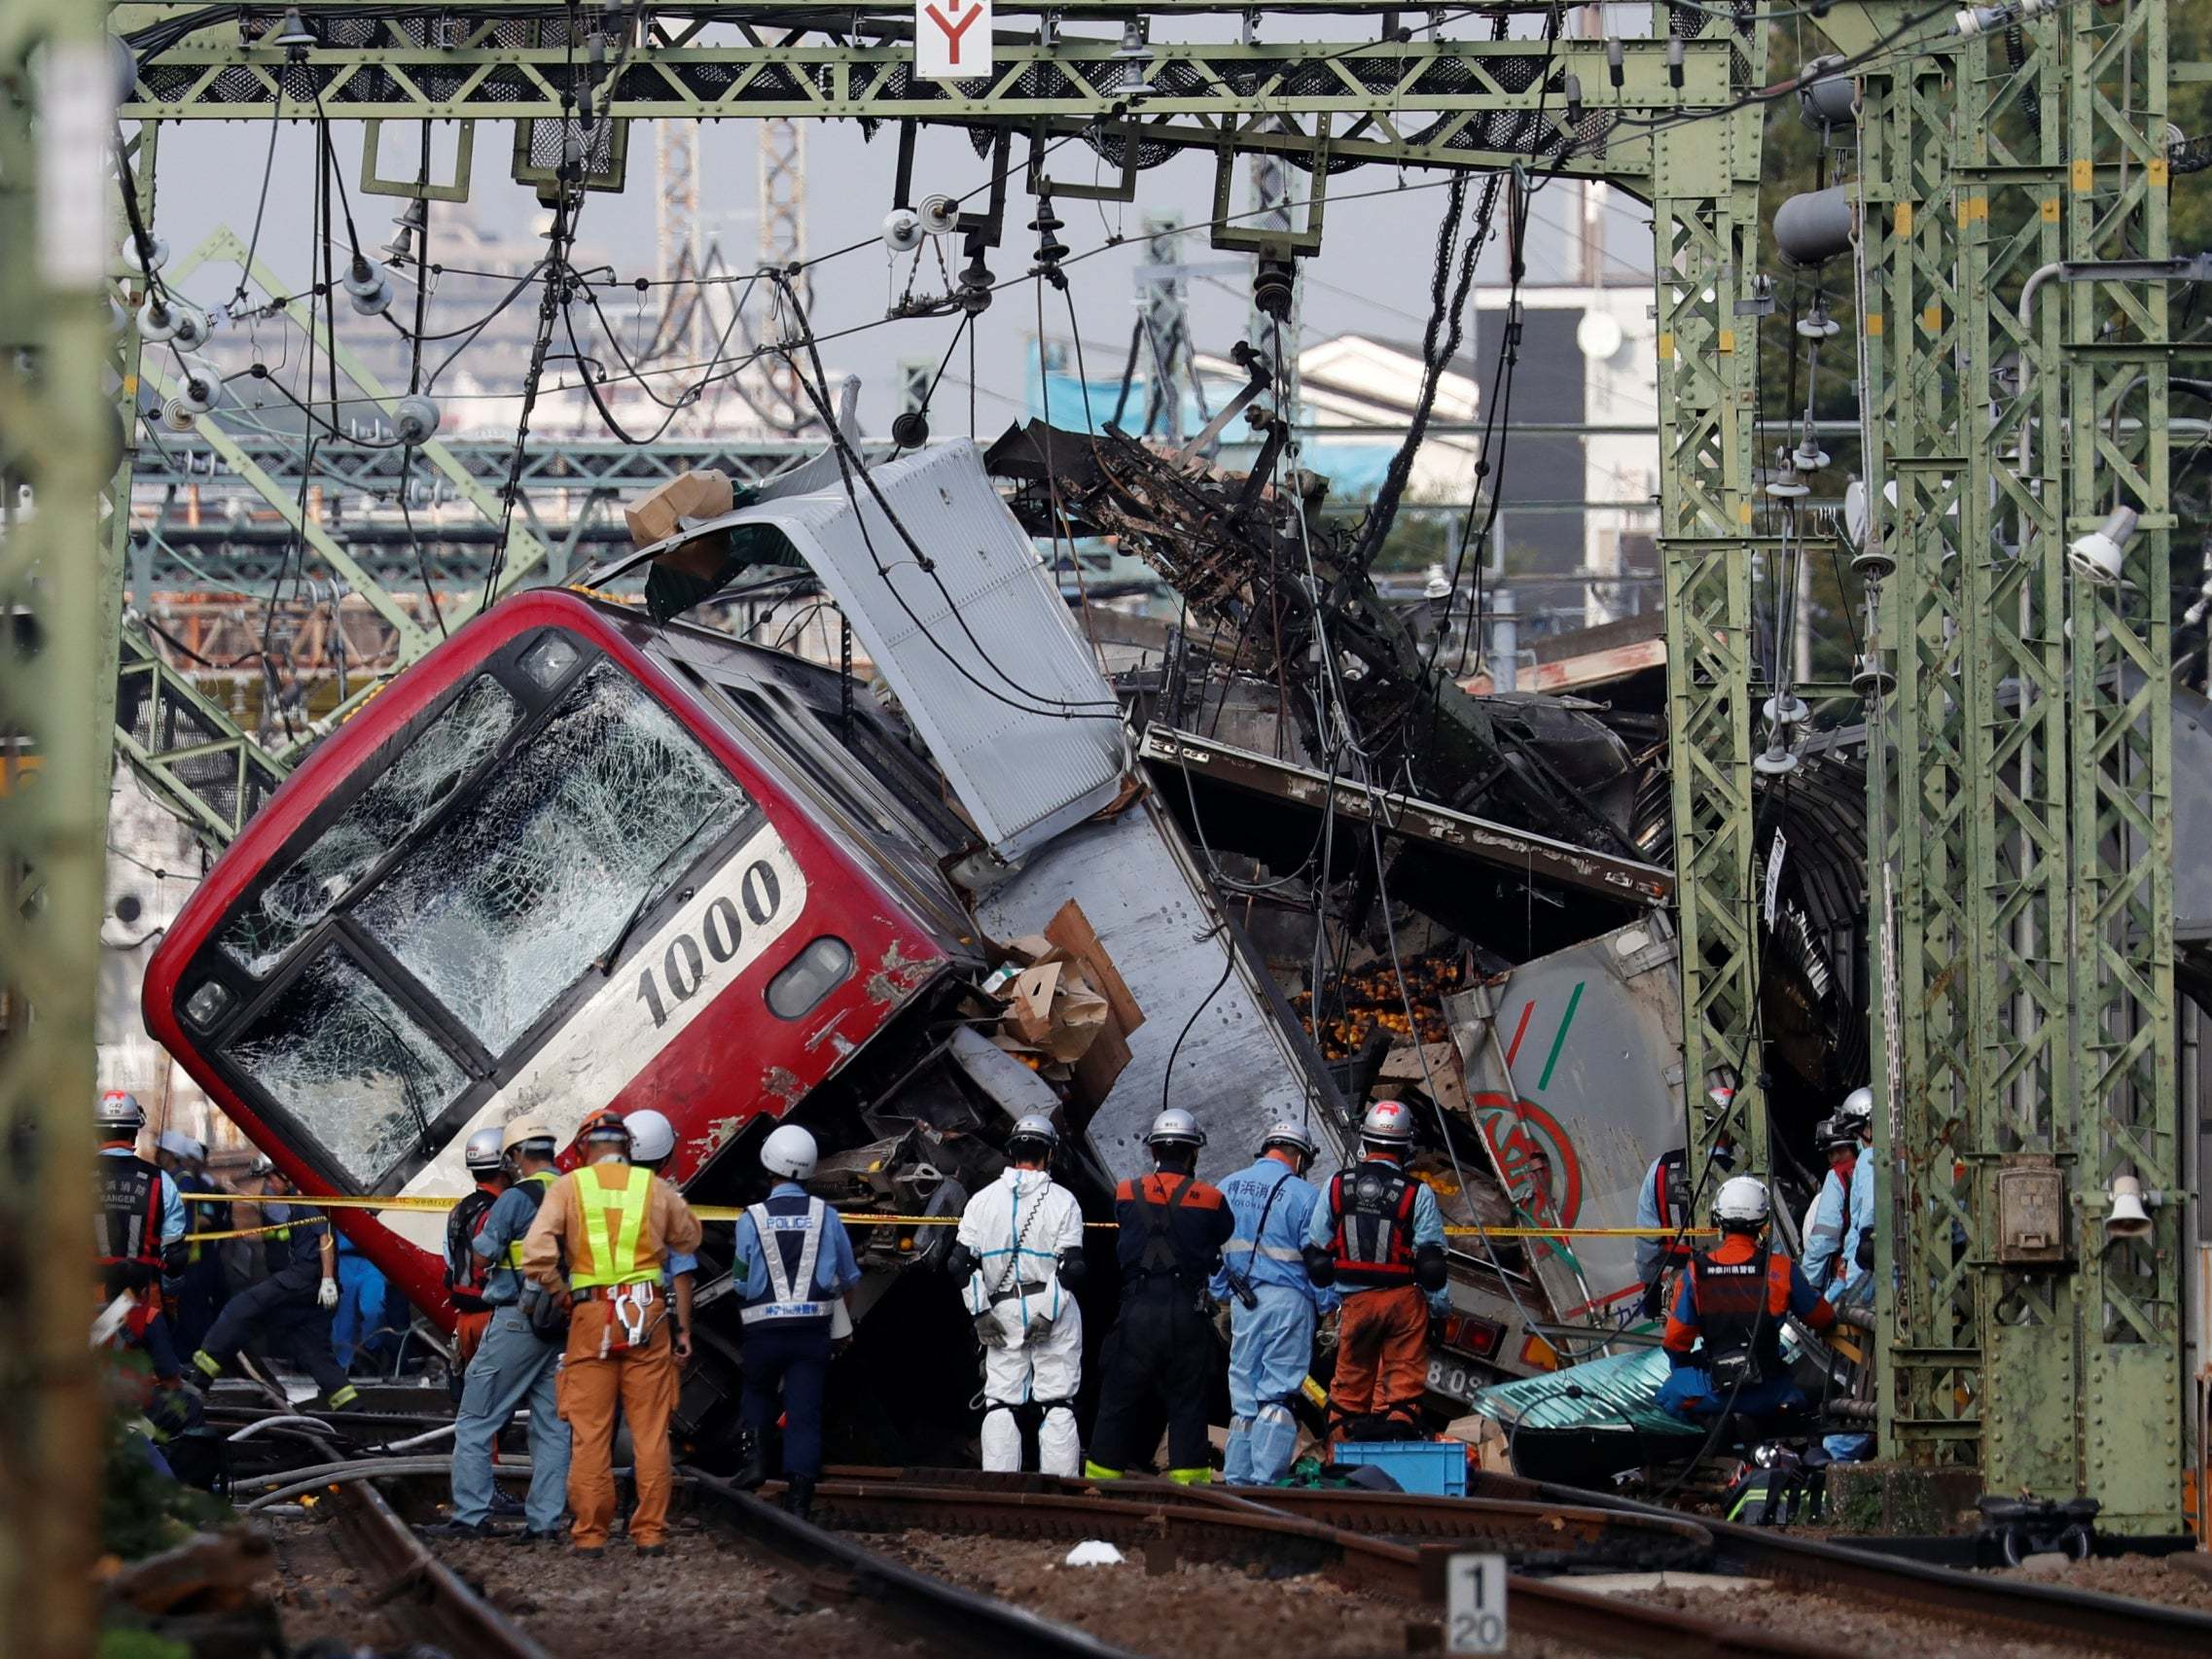 Japan train crash: Passenger express in fatal collision with